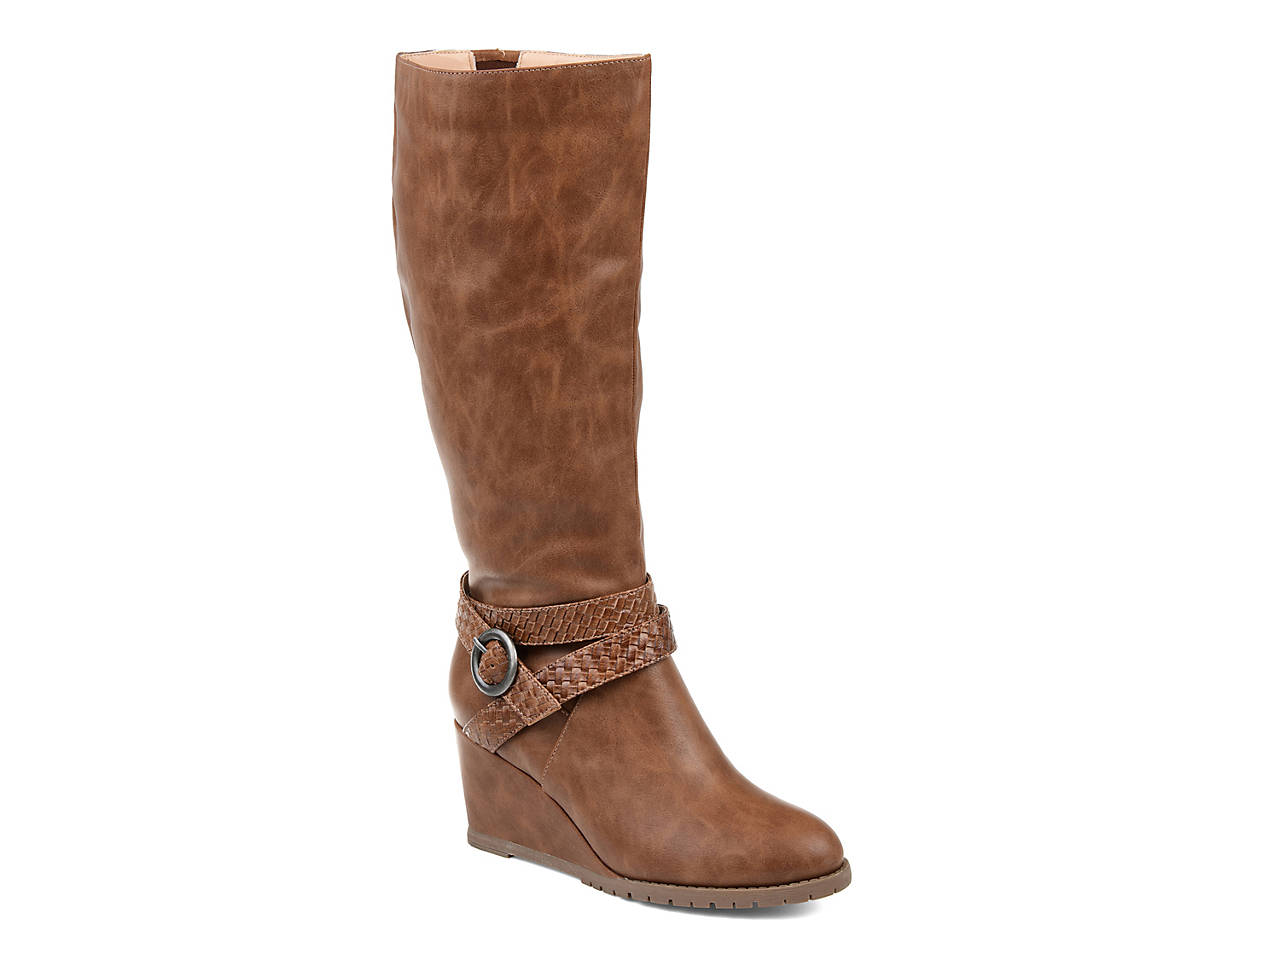 5f43e4c3486c Journee Collection Garin Wedge Boot Women s Shoes